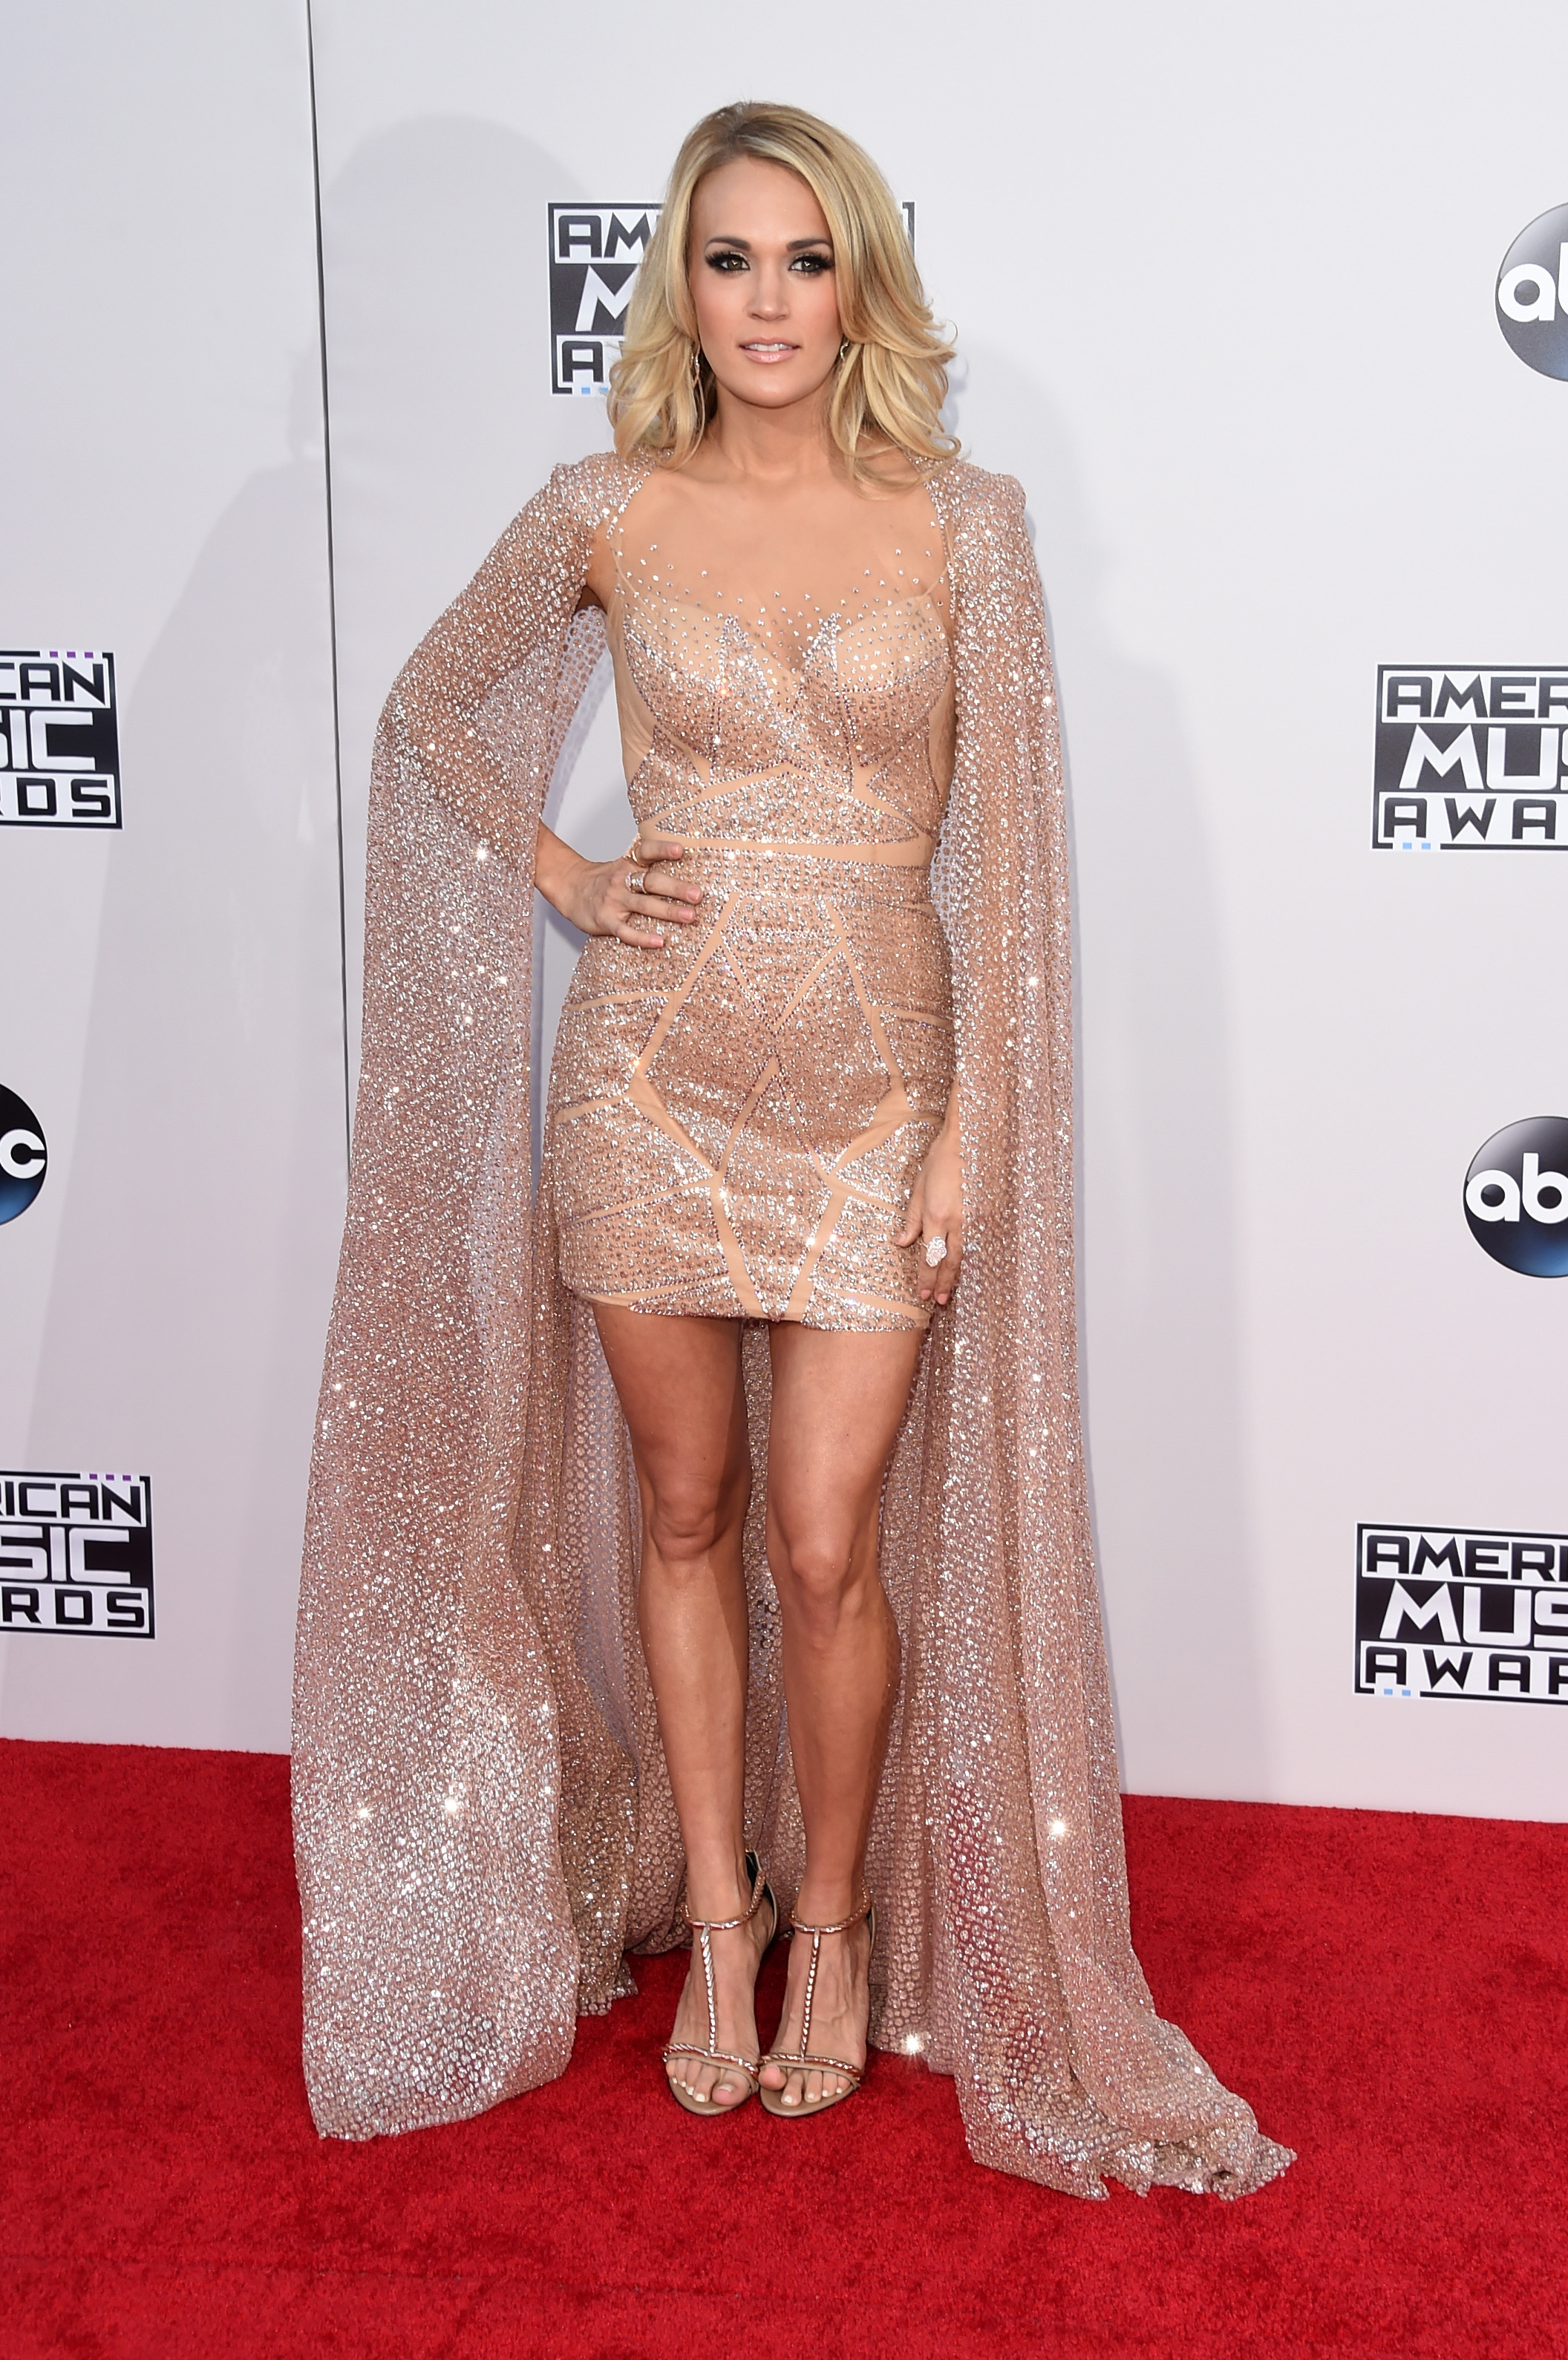 Top 10 hottest American Music Awards red carpet looks, starring Carrie Underwood, Demi Lovato, Nick Jonas [GALLERY]